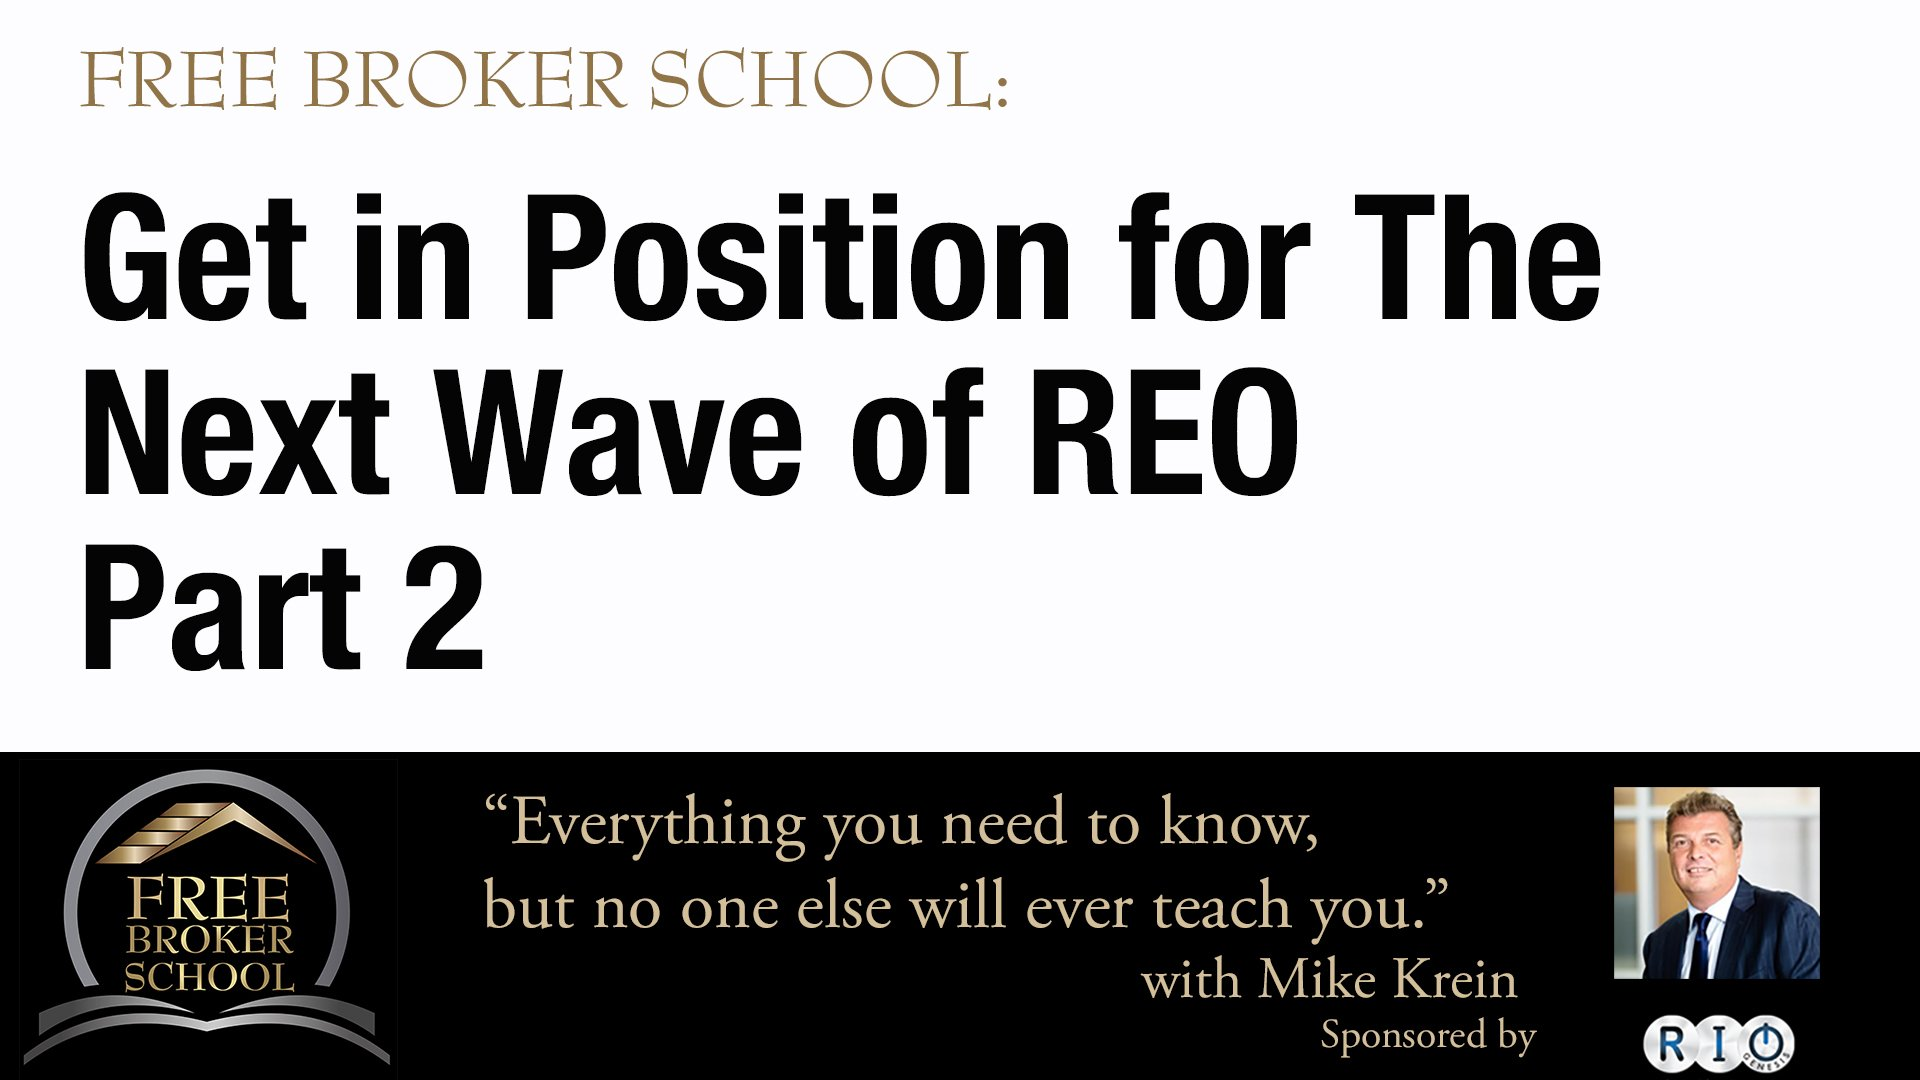 Free Broker School: Get in position for the next wave of REO Part 2